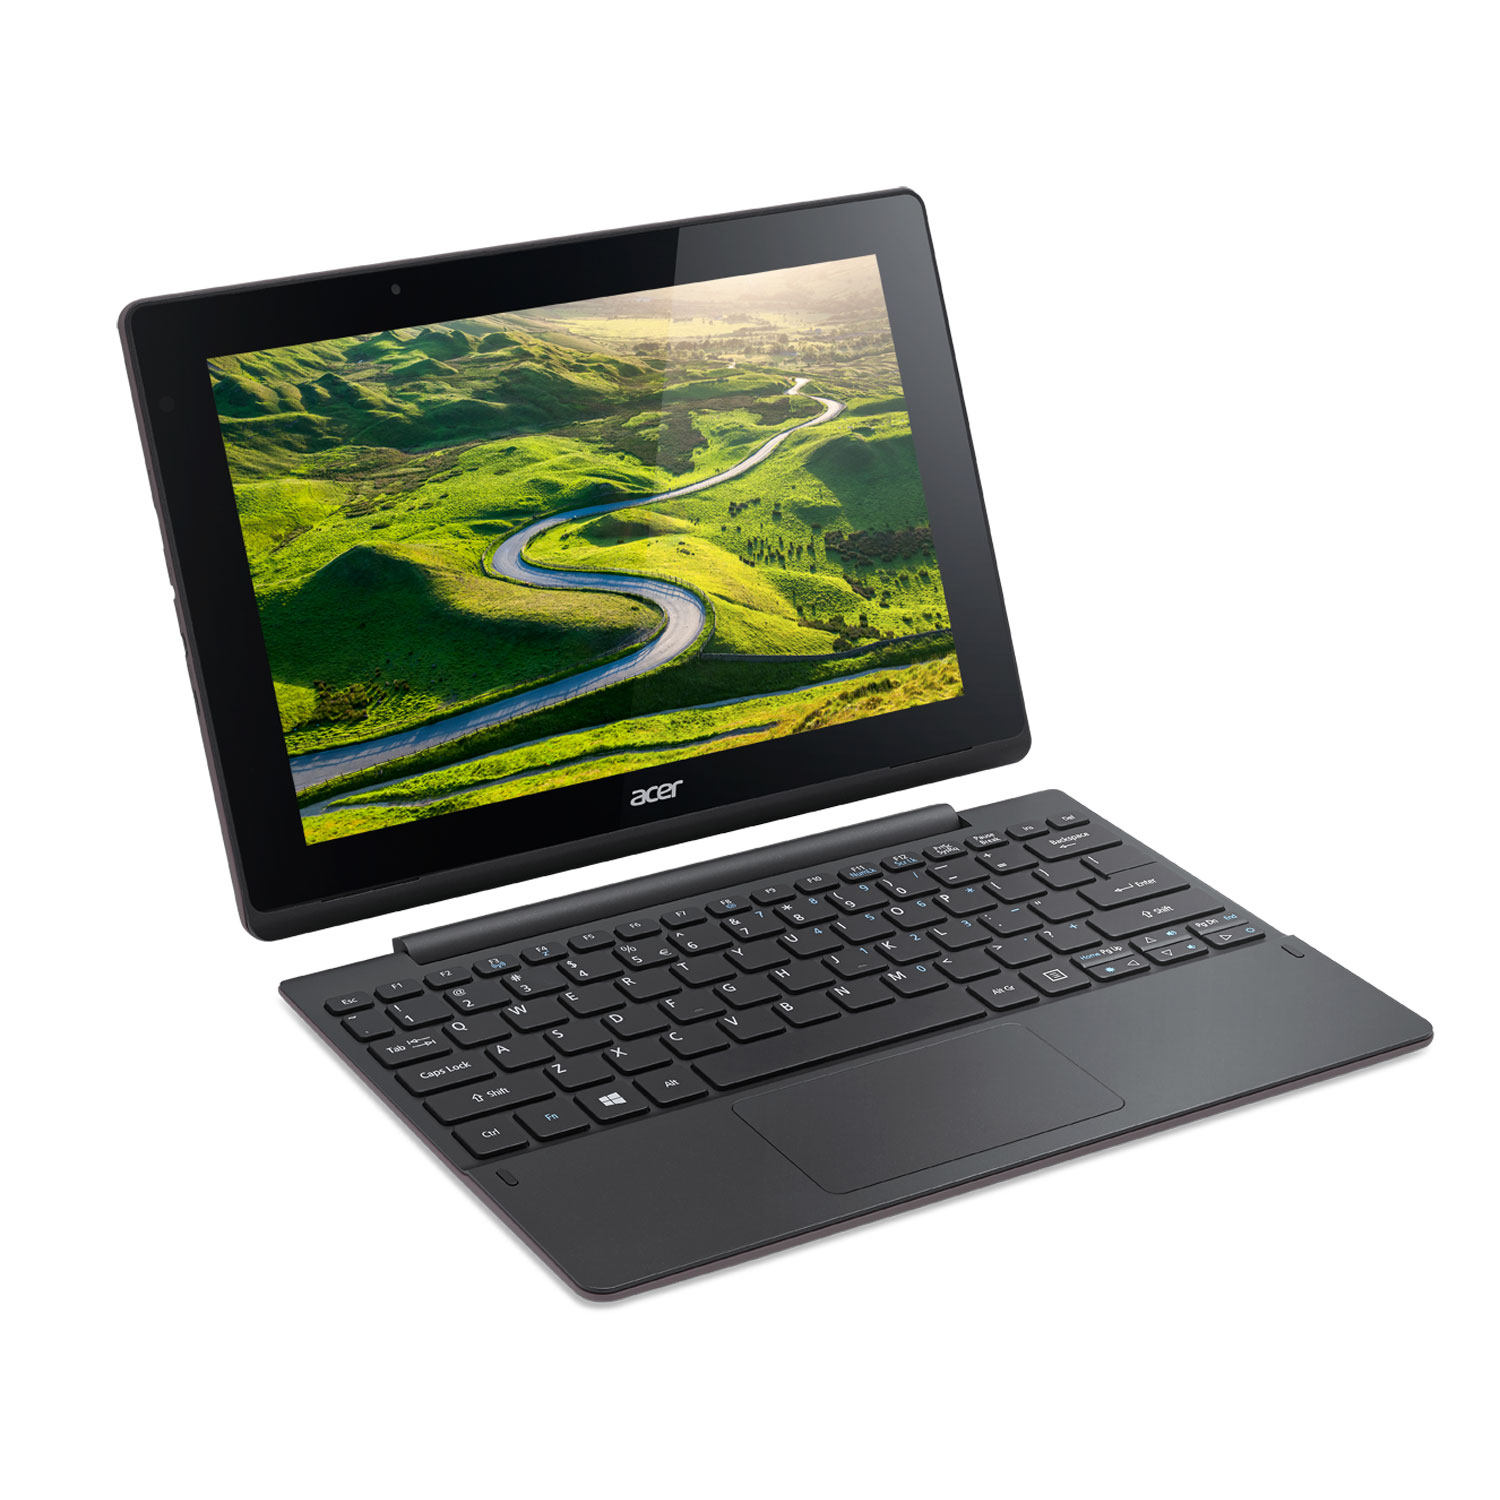 acer aspire switch 10 e sw3 013 18m7 tablette tactile acer sur. Black Bedroom Furniture Sets. Home Design Ideas